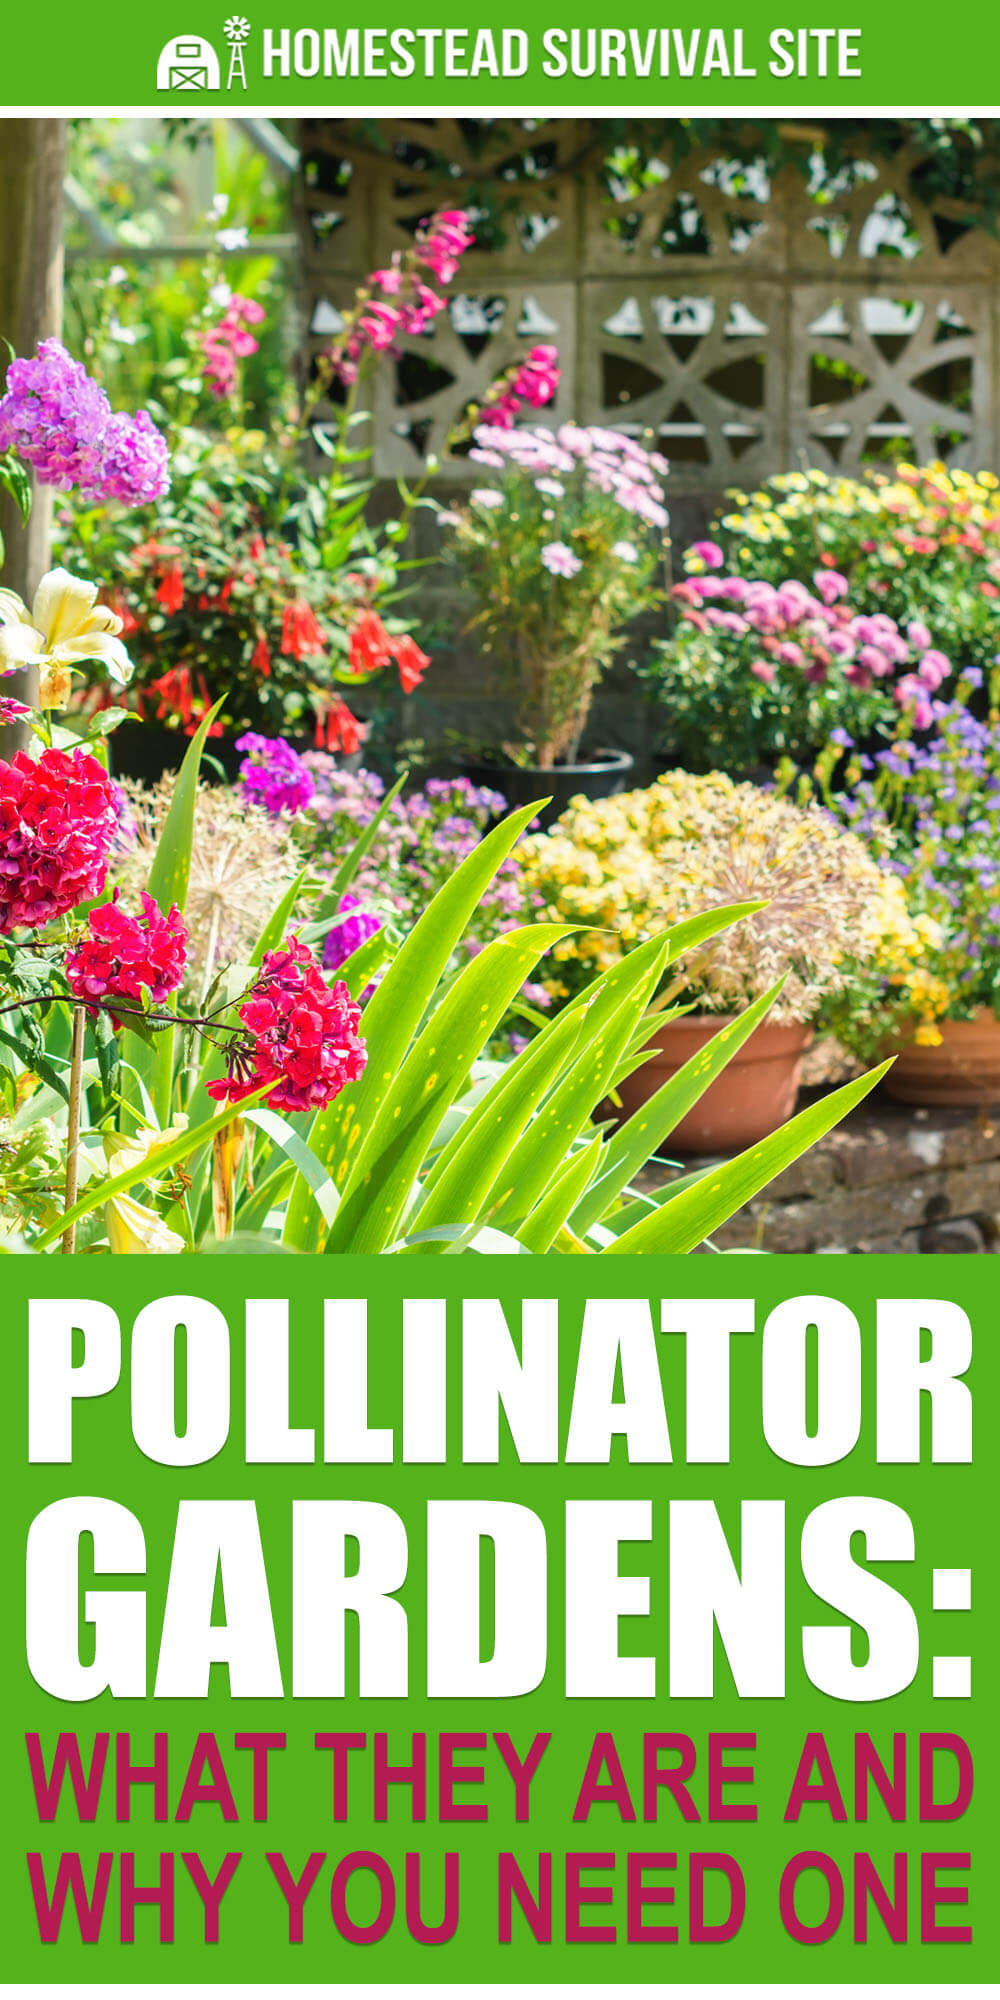 Pollinator Gardens: What They Are and Why You Need One